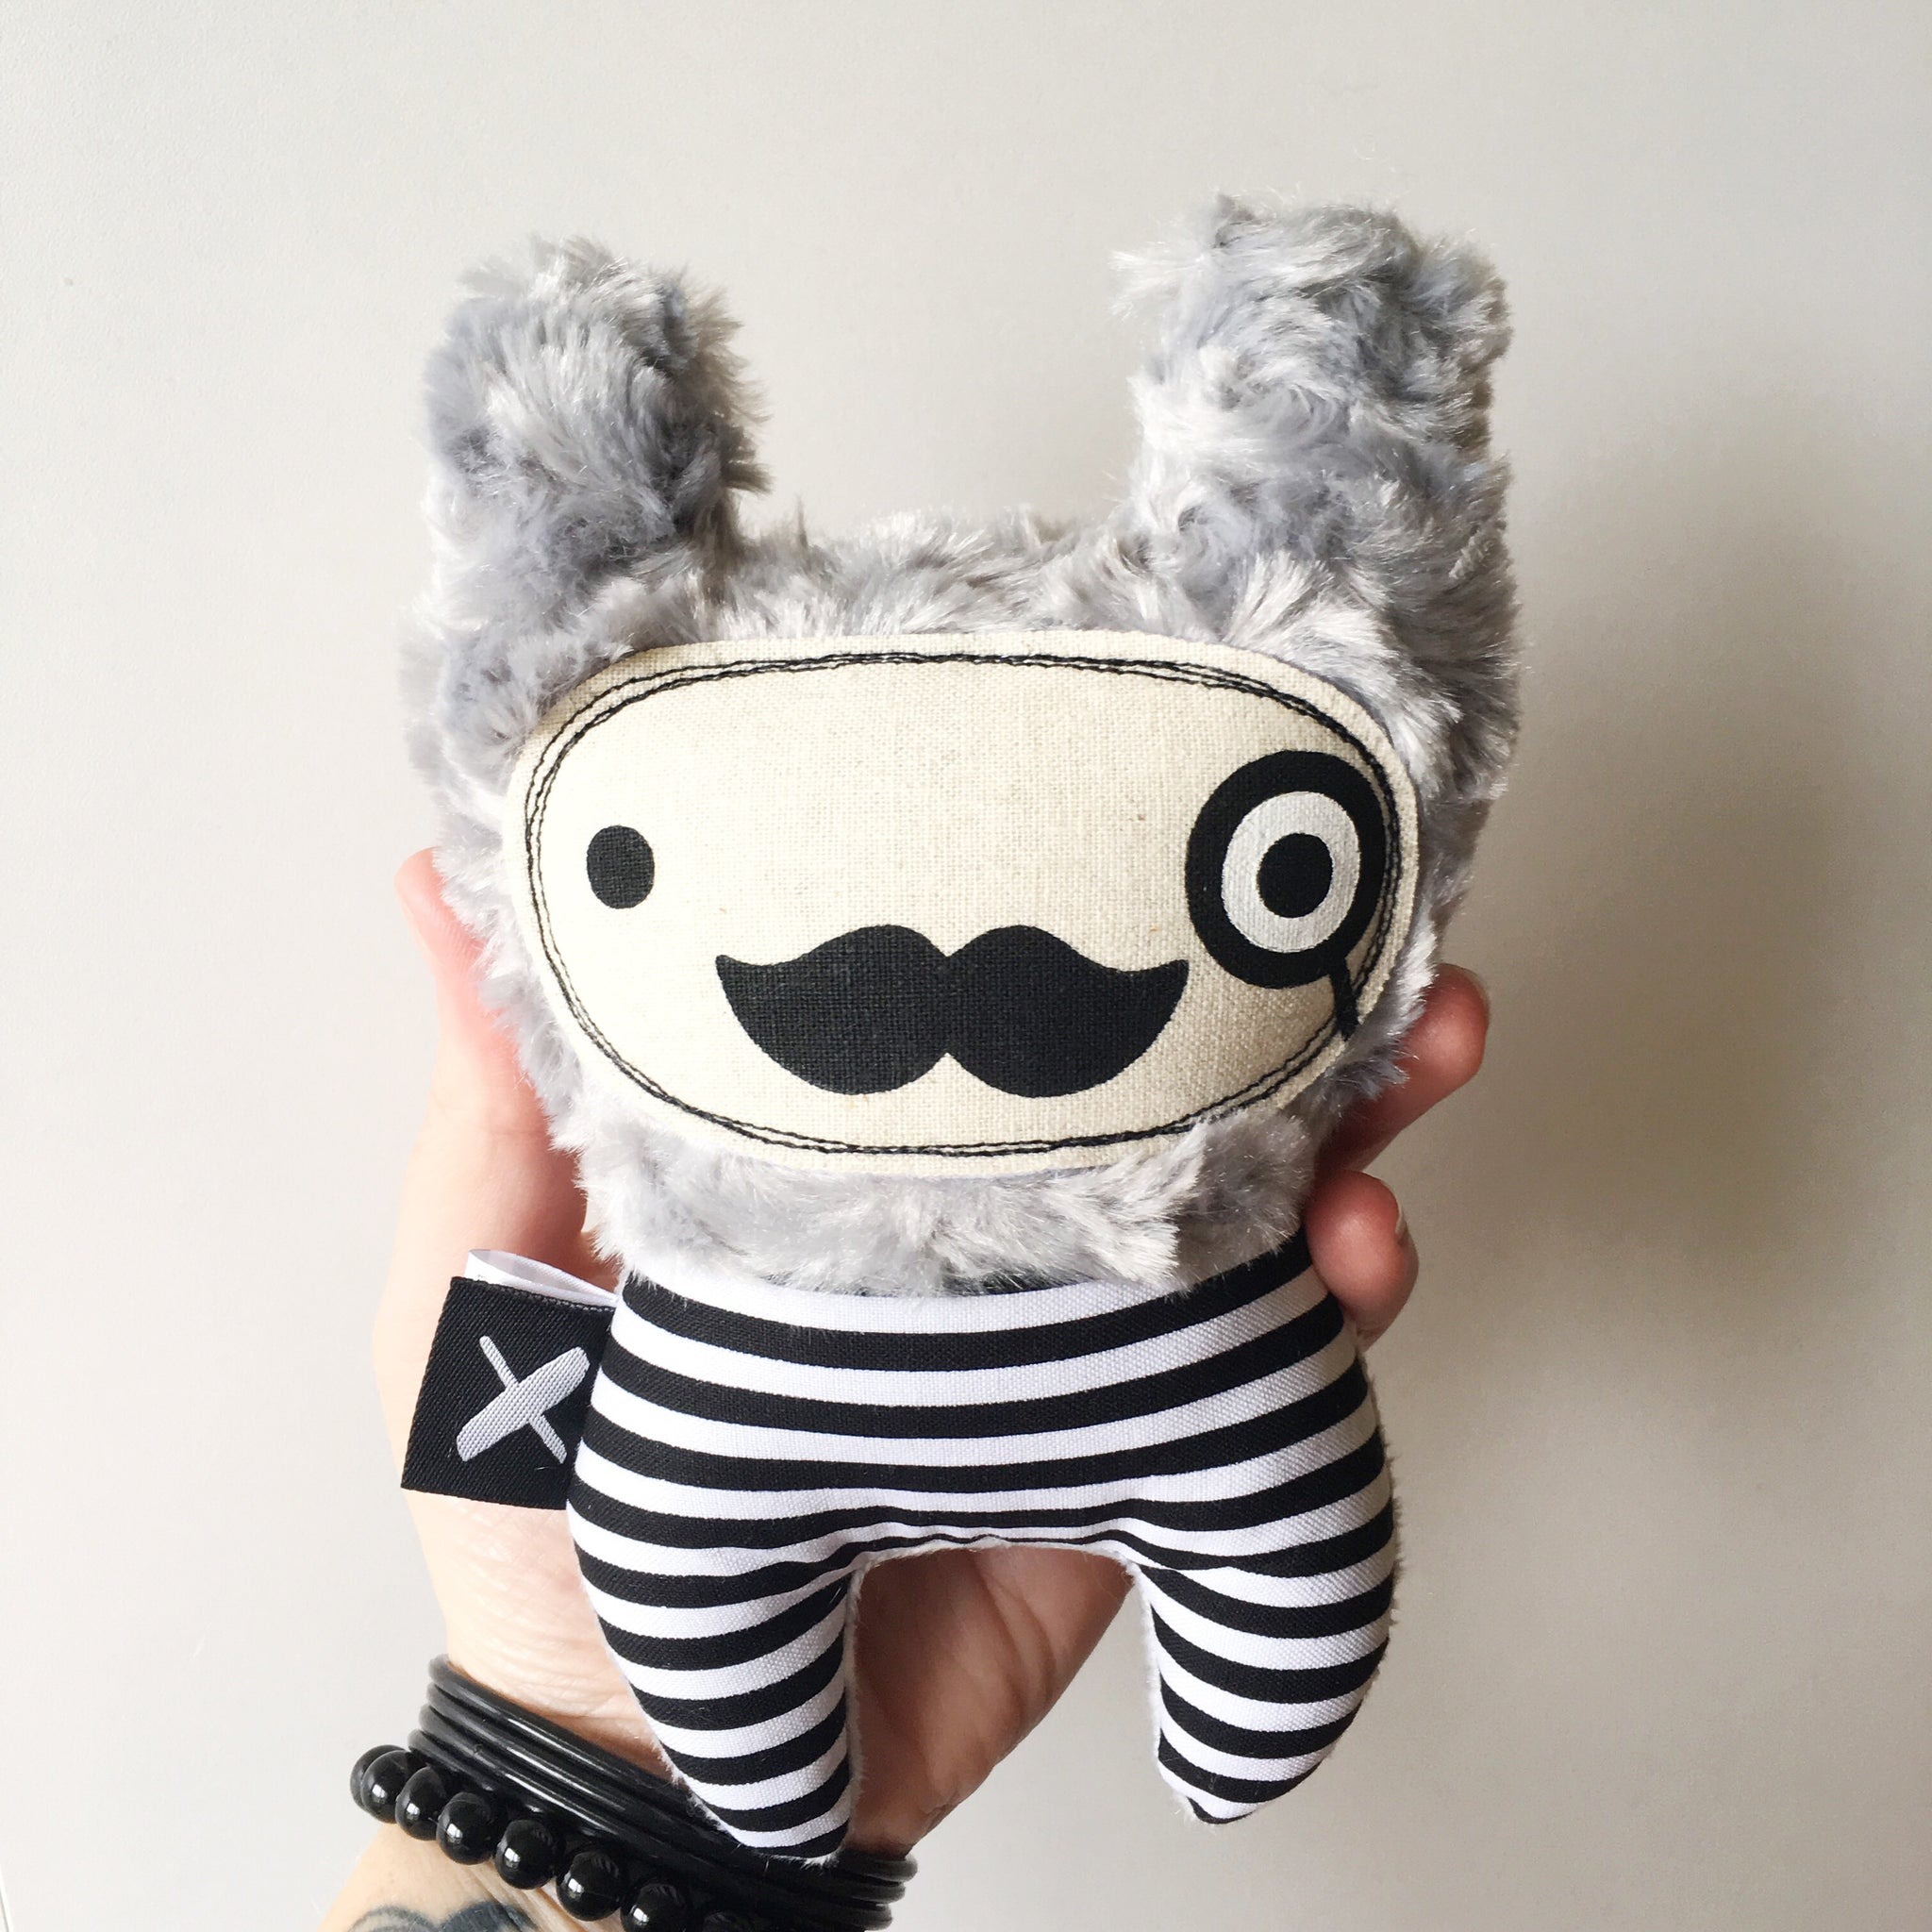 Mini Mista 'MOUSTACHIO' rattle